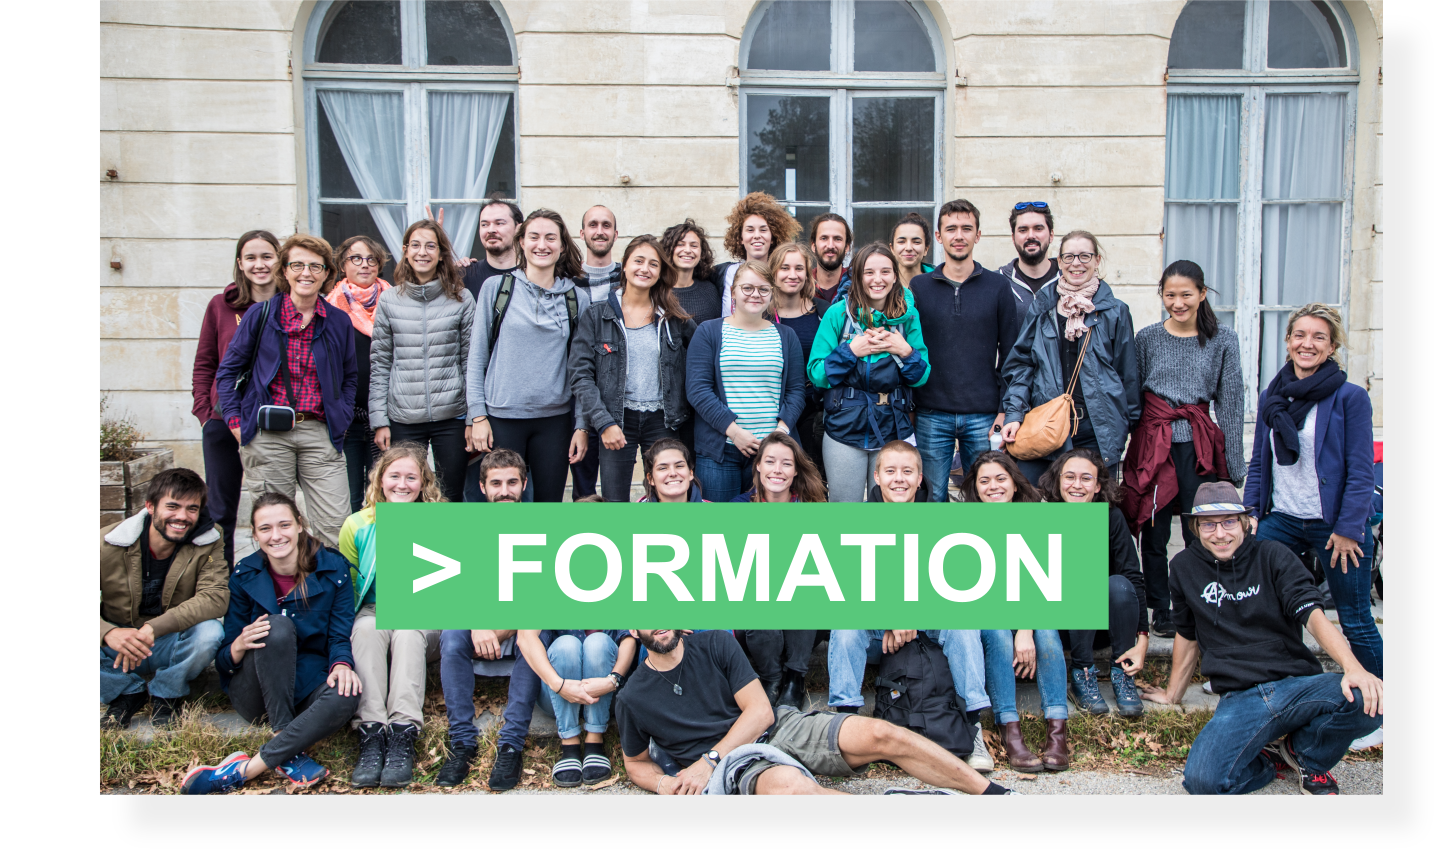 //www.isige.mines-paristech.fr/wp-content/uploads/2019/12/formation_a_isige-1.png